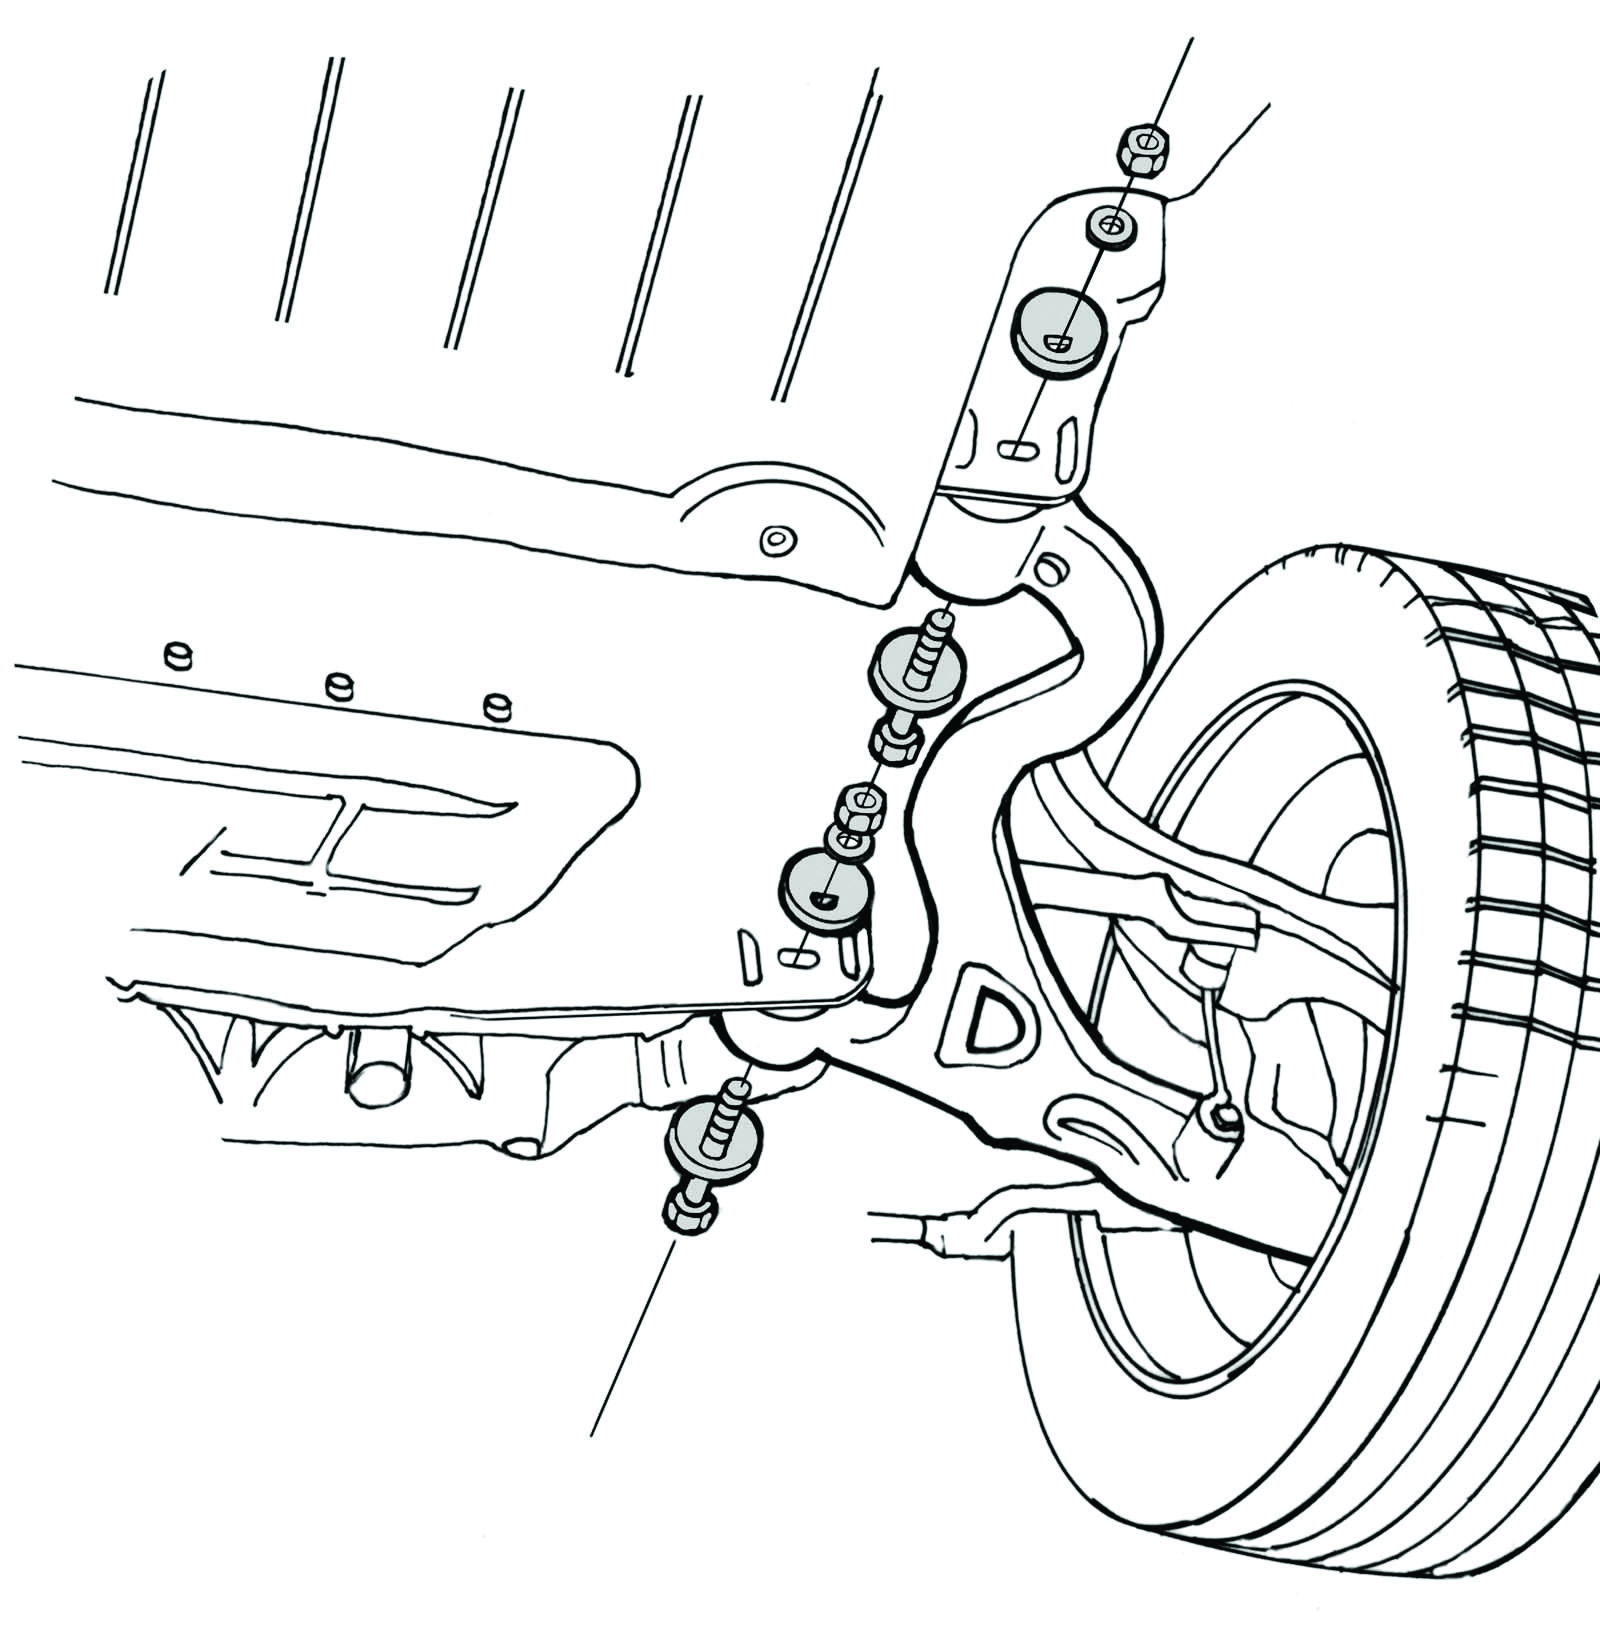 Service manual [How To Align Caster On A 2011 Jaguar Xf